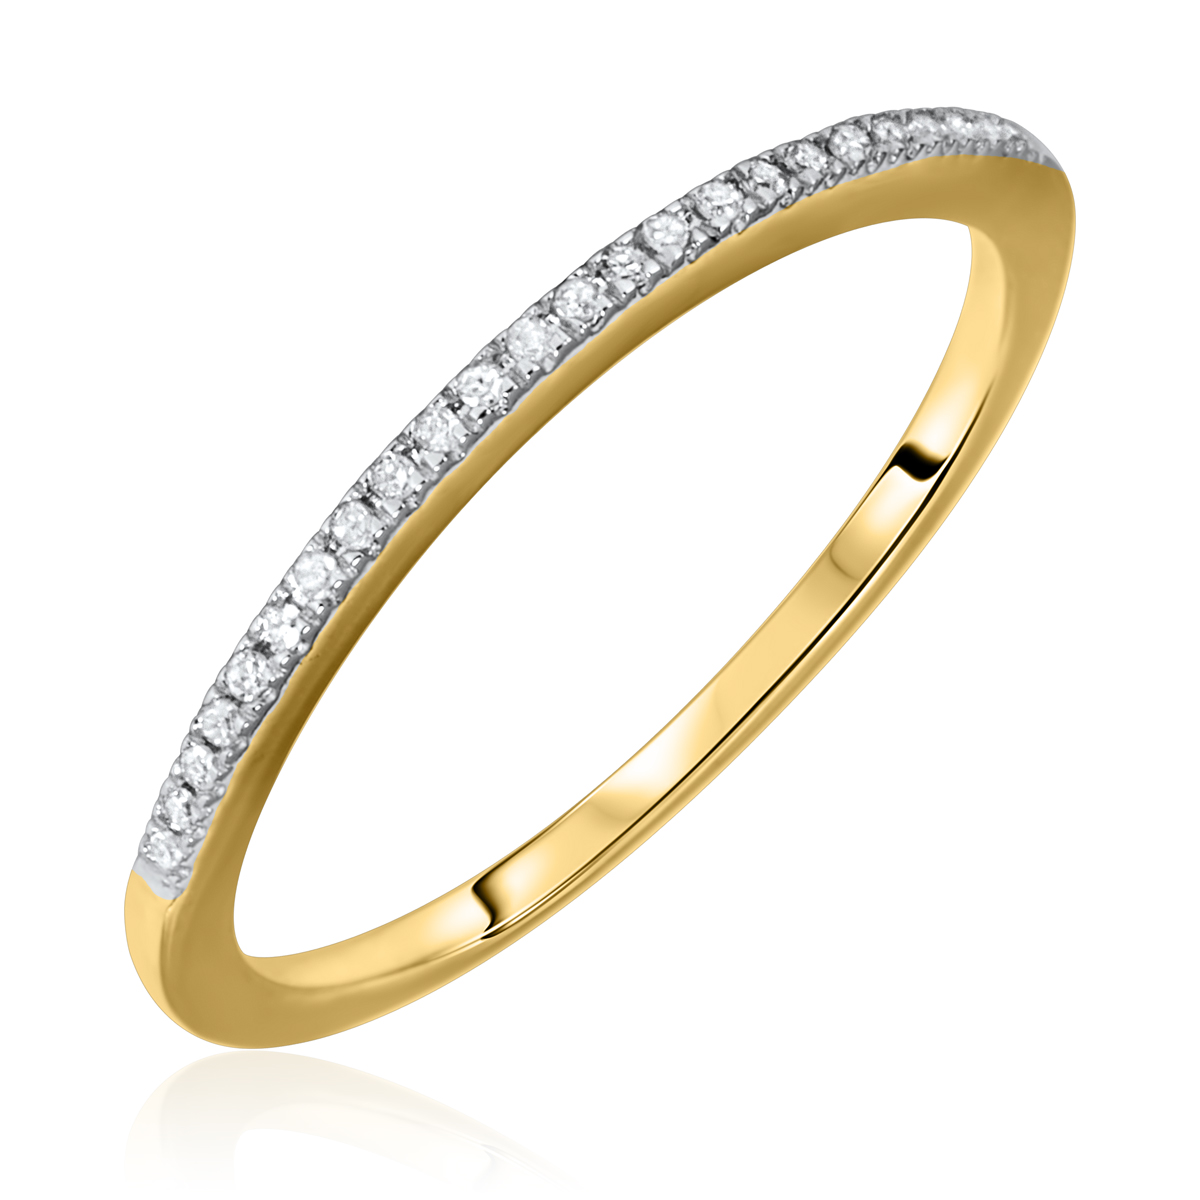 1/10 Carat T.W. Round Cut Diamond Ladies Wedding Band 10K Yellow Gold- Size 8